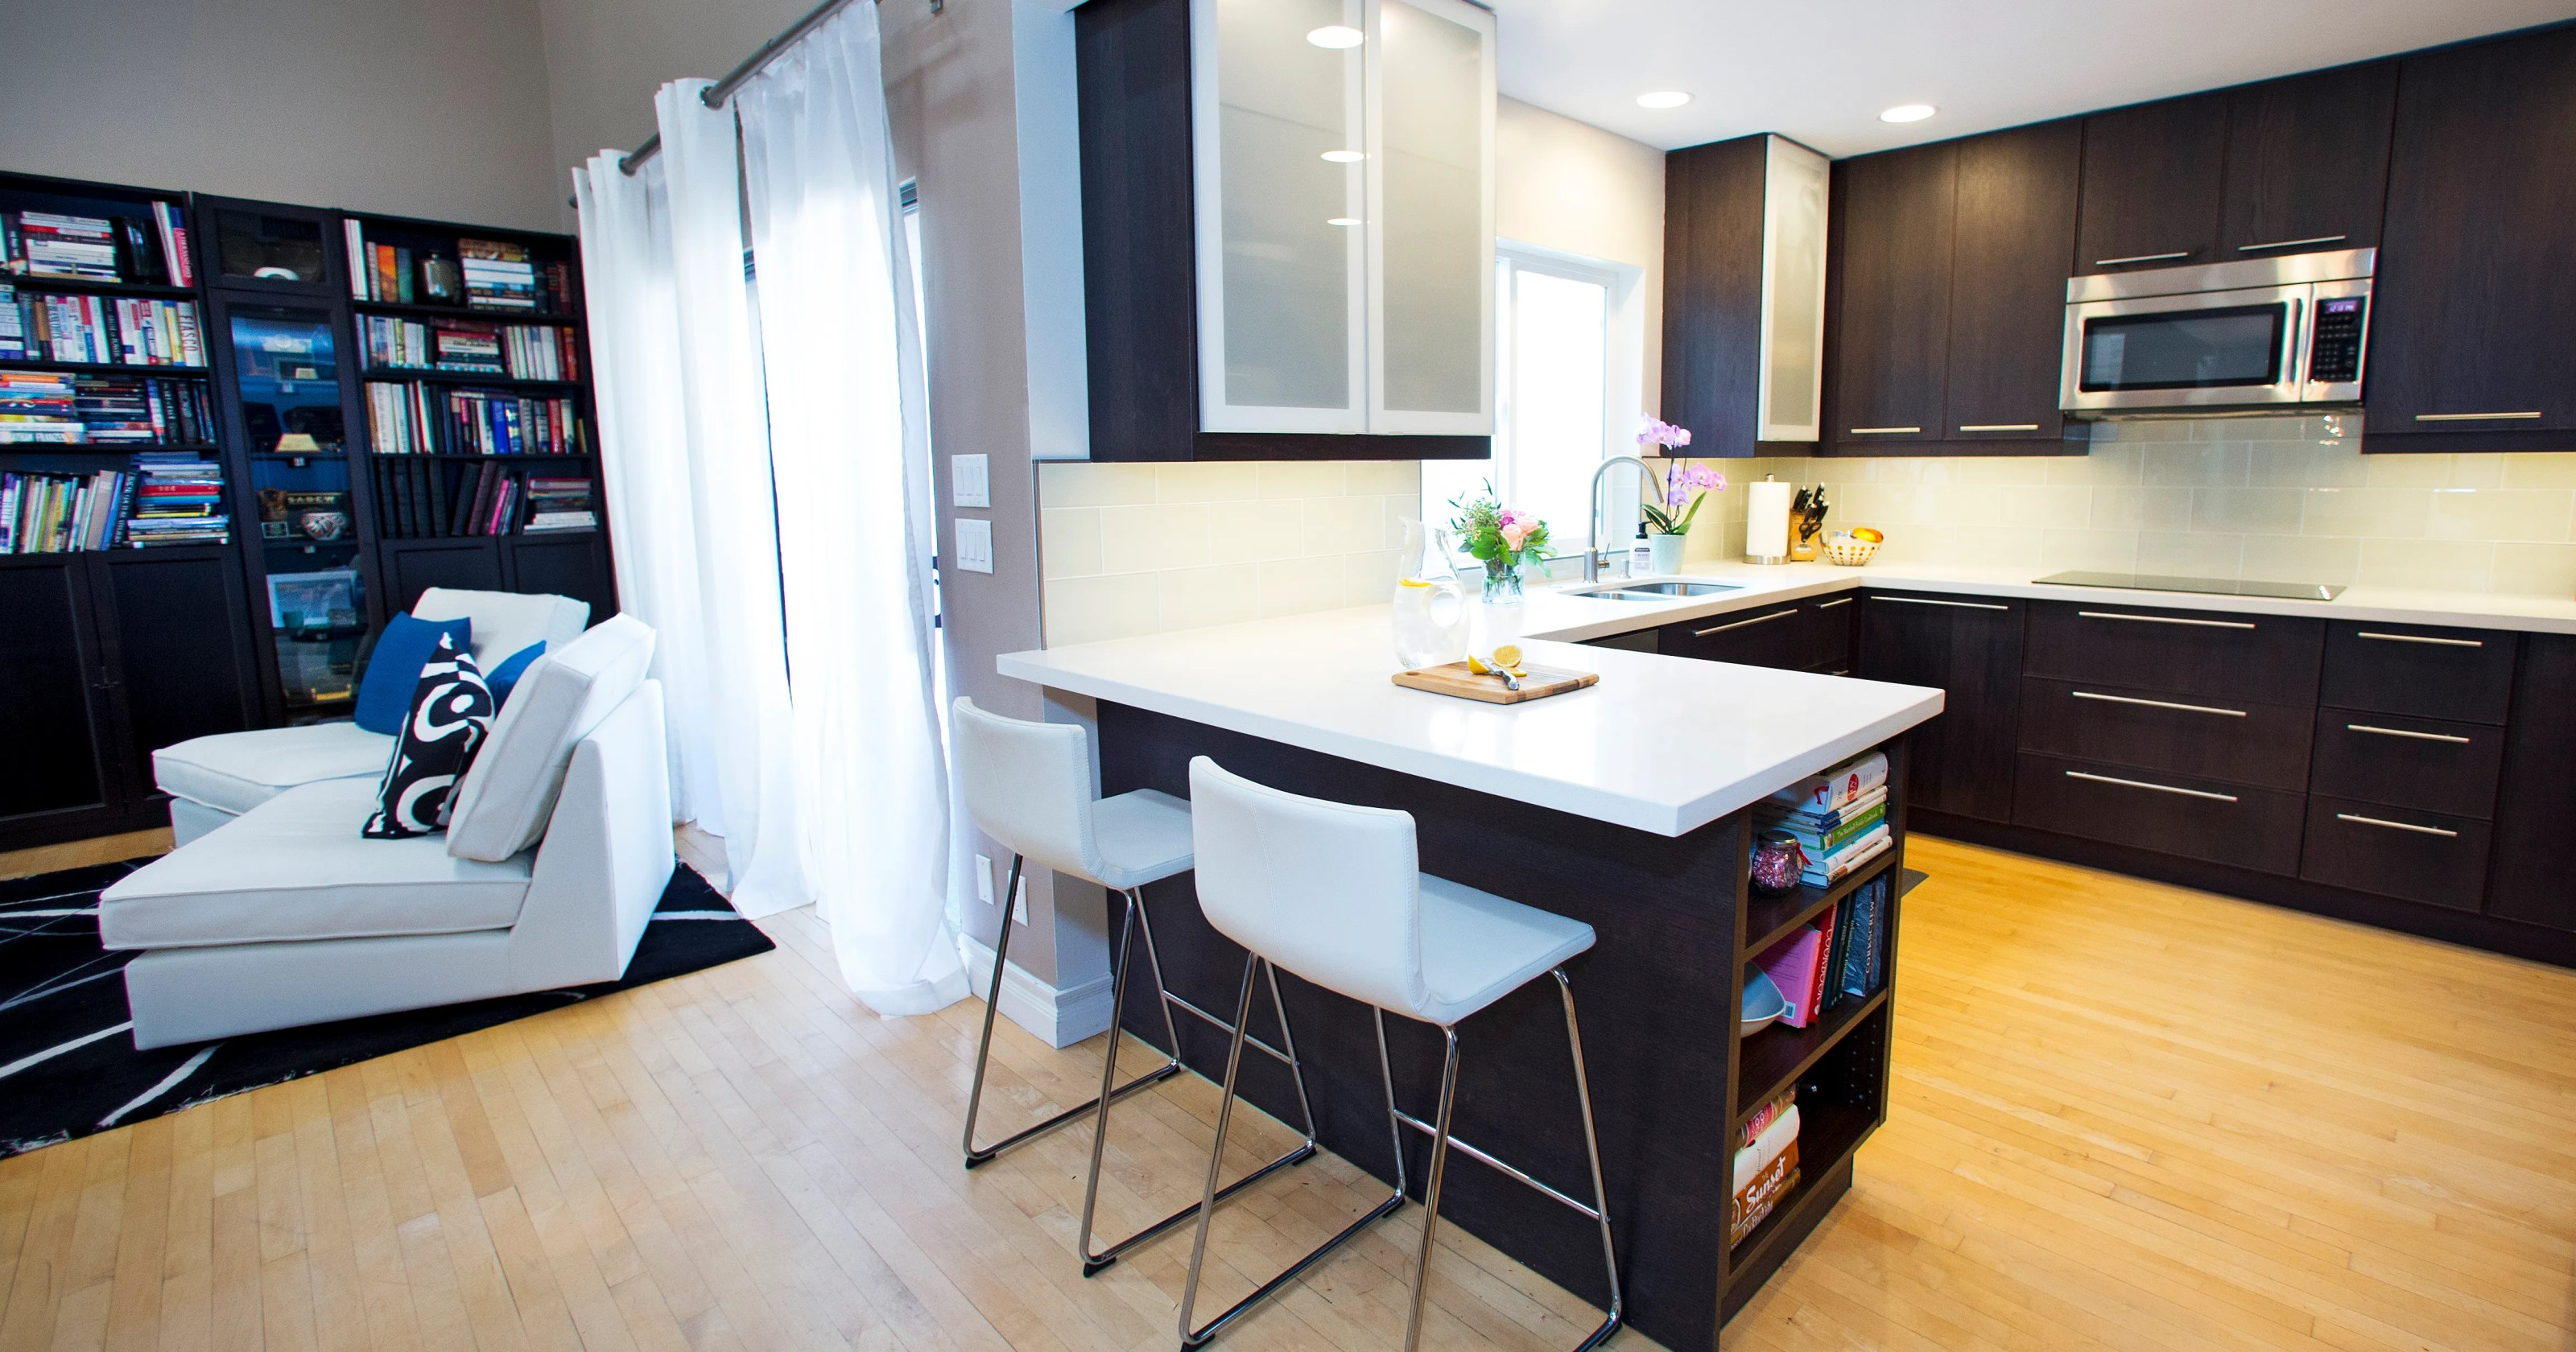 i spent $35,000 remodeling my kitchen, and here are 10 big lessons i